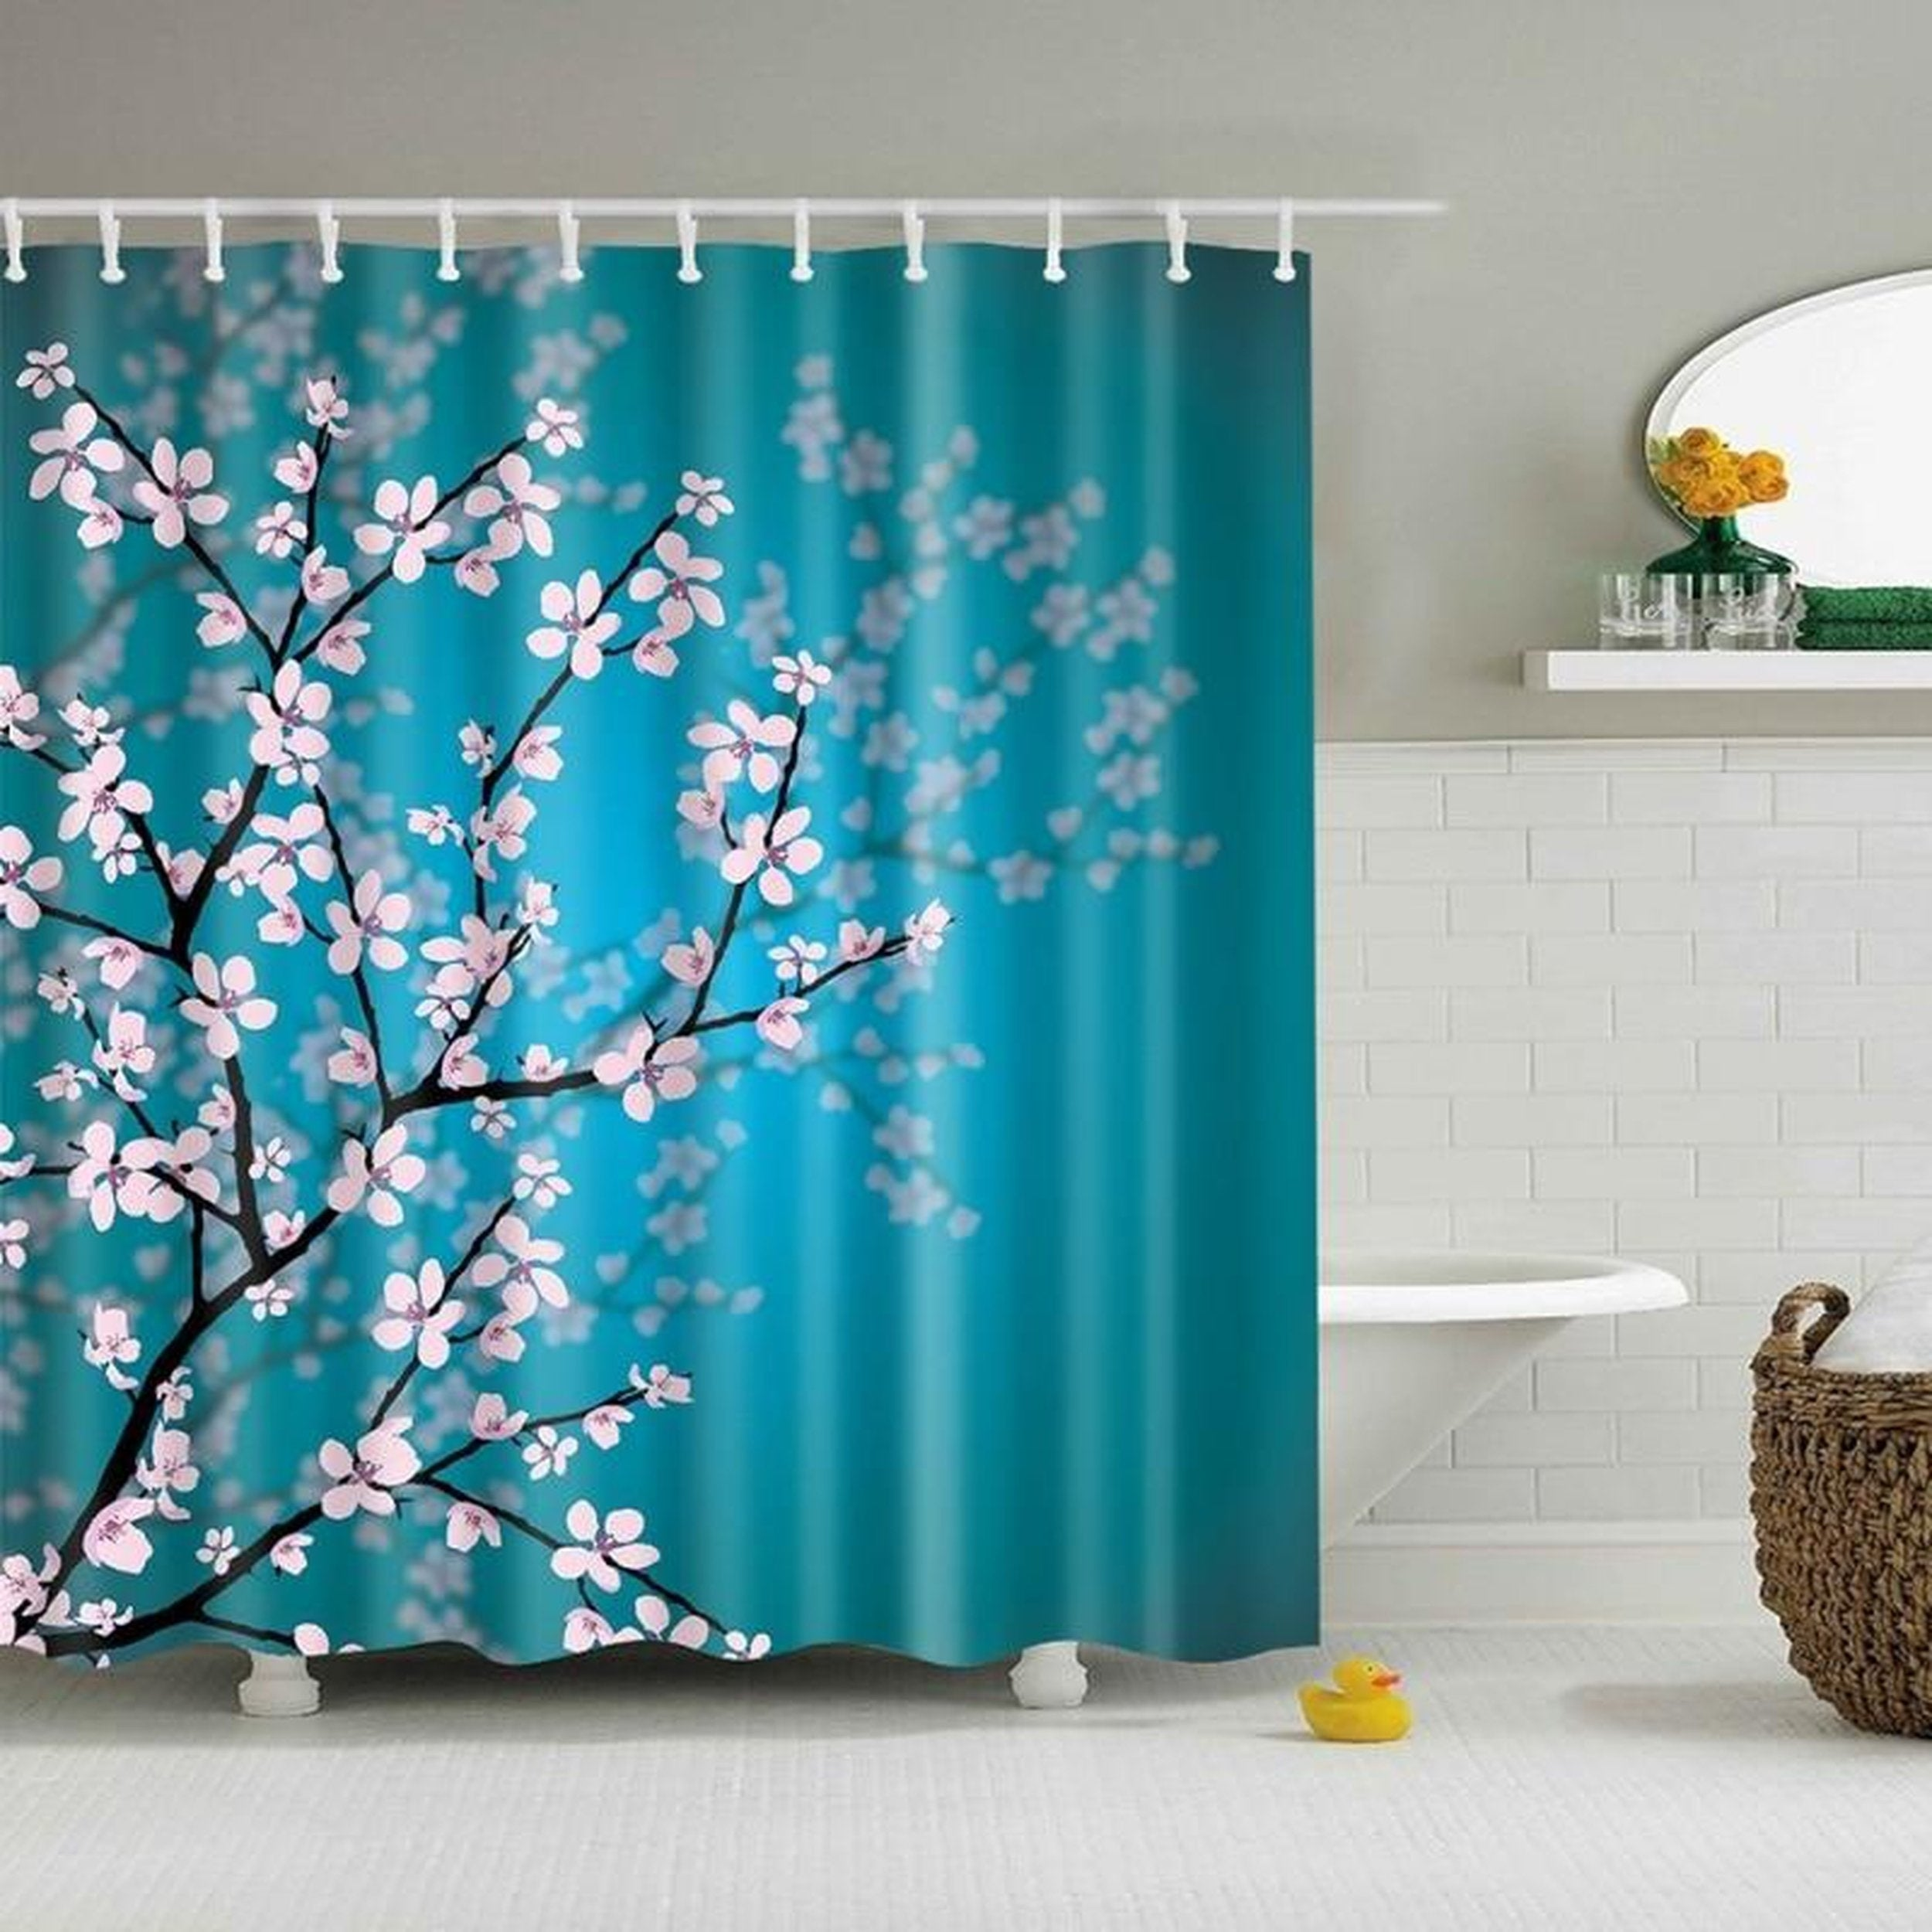 Shop Bathroom Shower Curtains Pink Blossoms Decor Leaves And Plants Spring Flowers